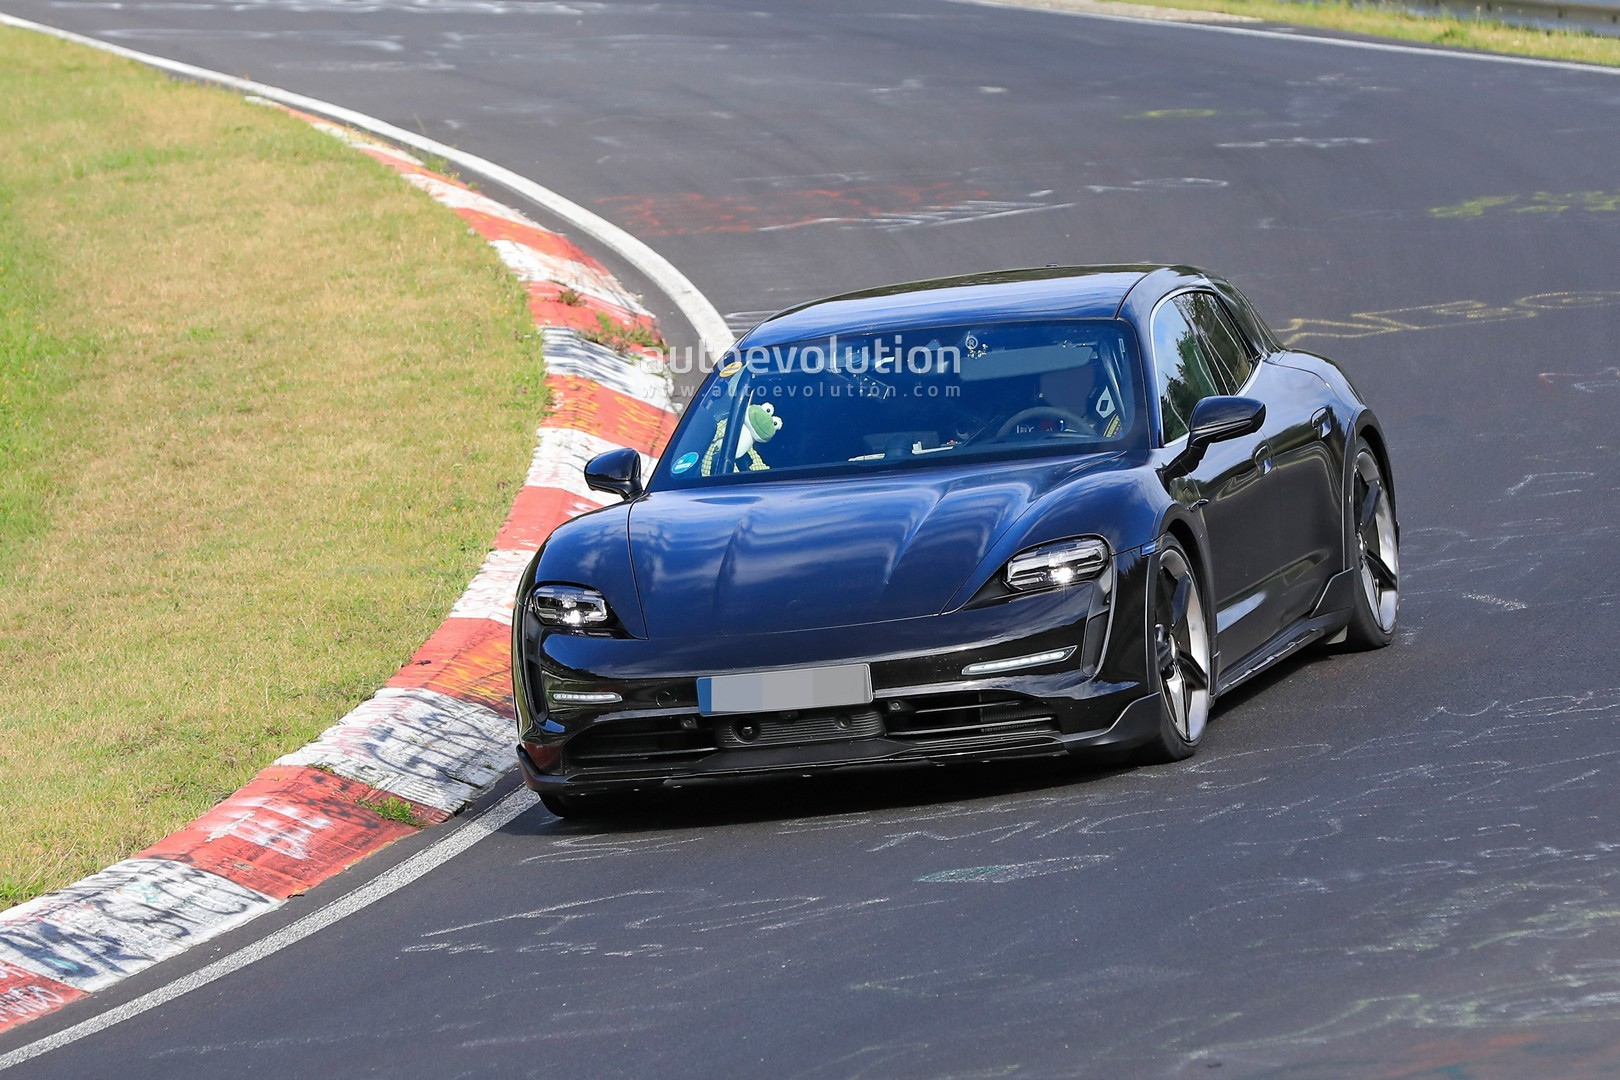 2020 - [Porsche] Taycan Sport Turismo - Page 2 Porsche-taycan-cross-turismo-spied-testing-hard-at-the-nurburgring_1